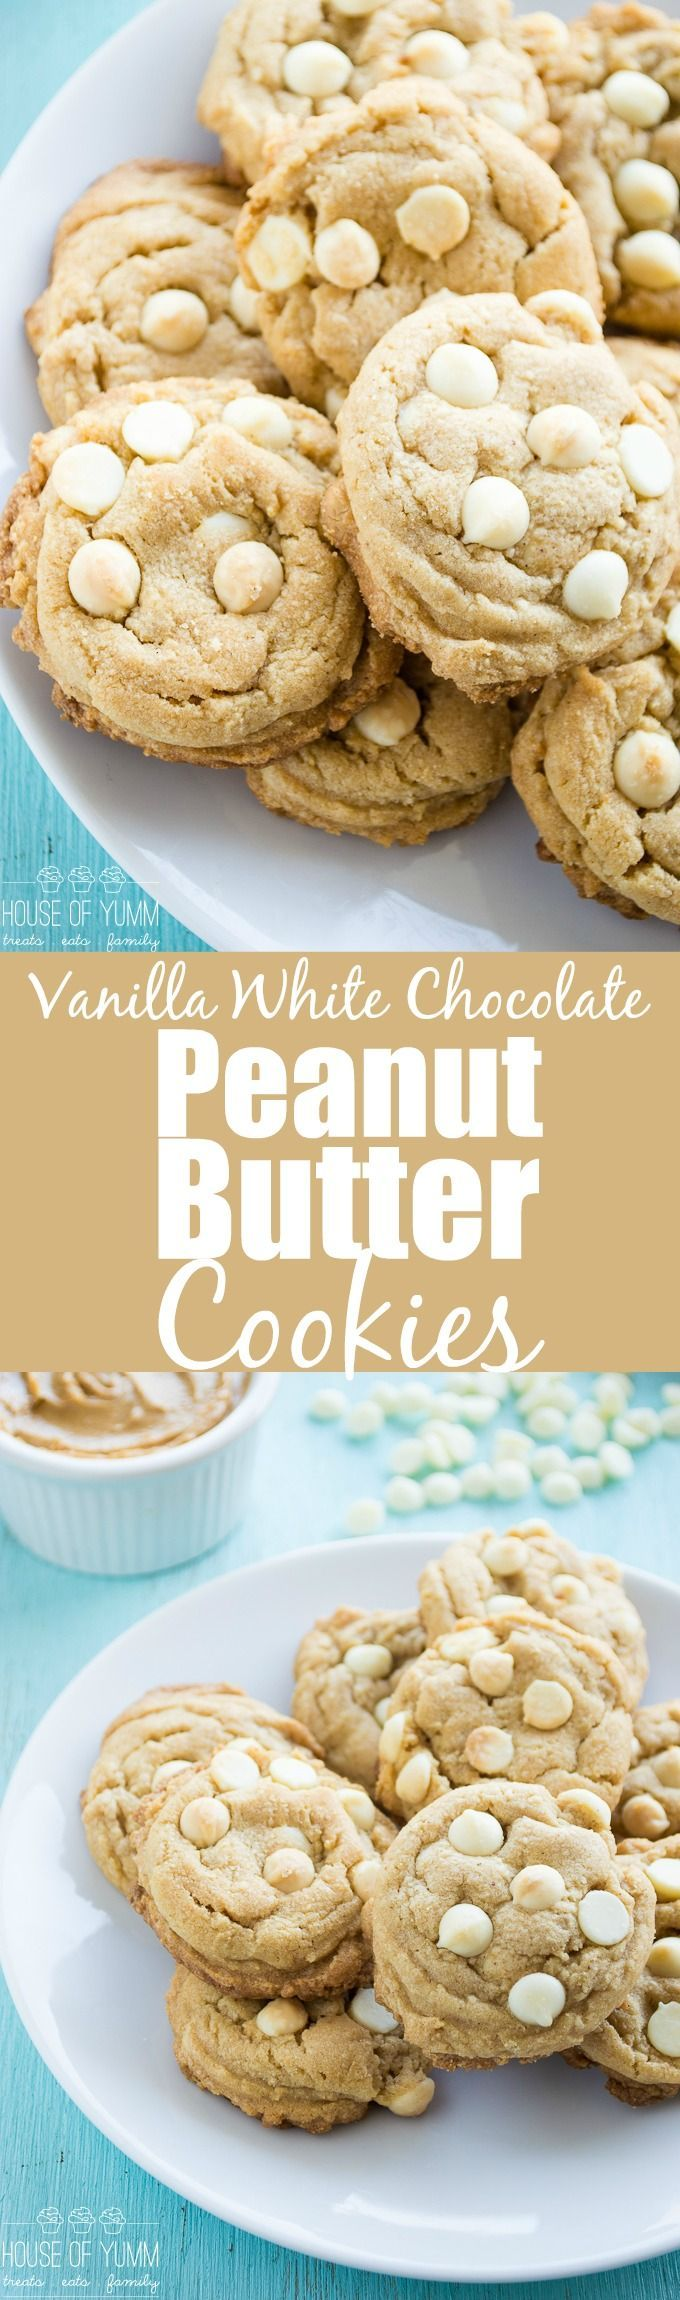 These SOFT and CHEWY peanut butter cookies are dressed up by using White Chocolate Peanut Butter, white chocolate chips extra vanilla and even a vanilla bean.  Alright y'all! It's December, and I have some super exciting news for you! Cookies! Vanilla White Chocolate Peanut Butter Cookies to be exact. That's it. That's the news....Read More »